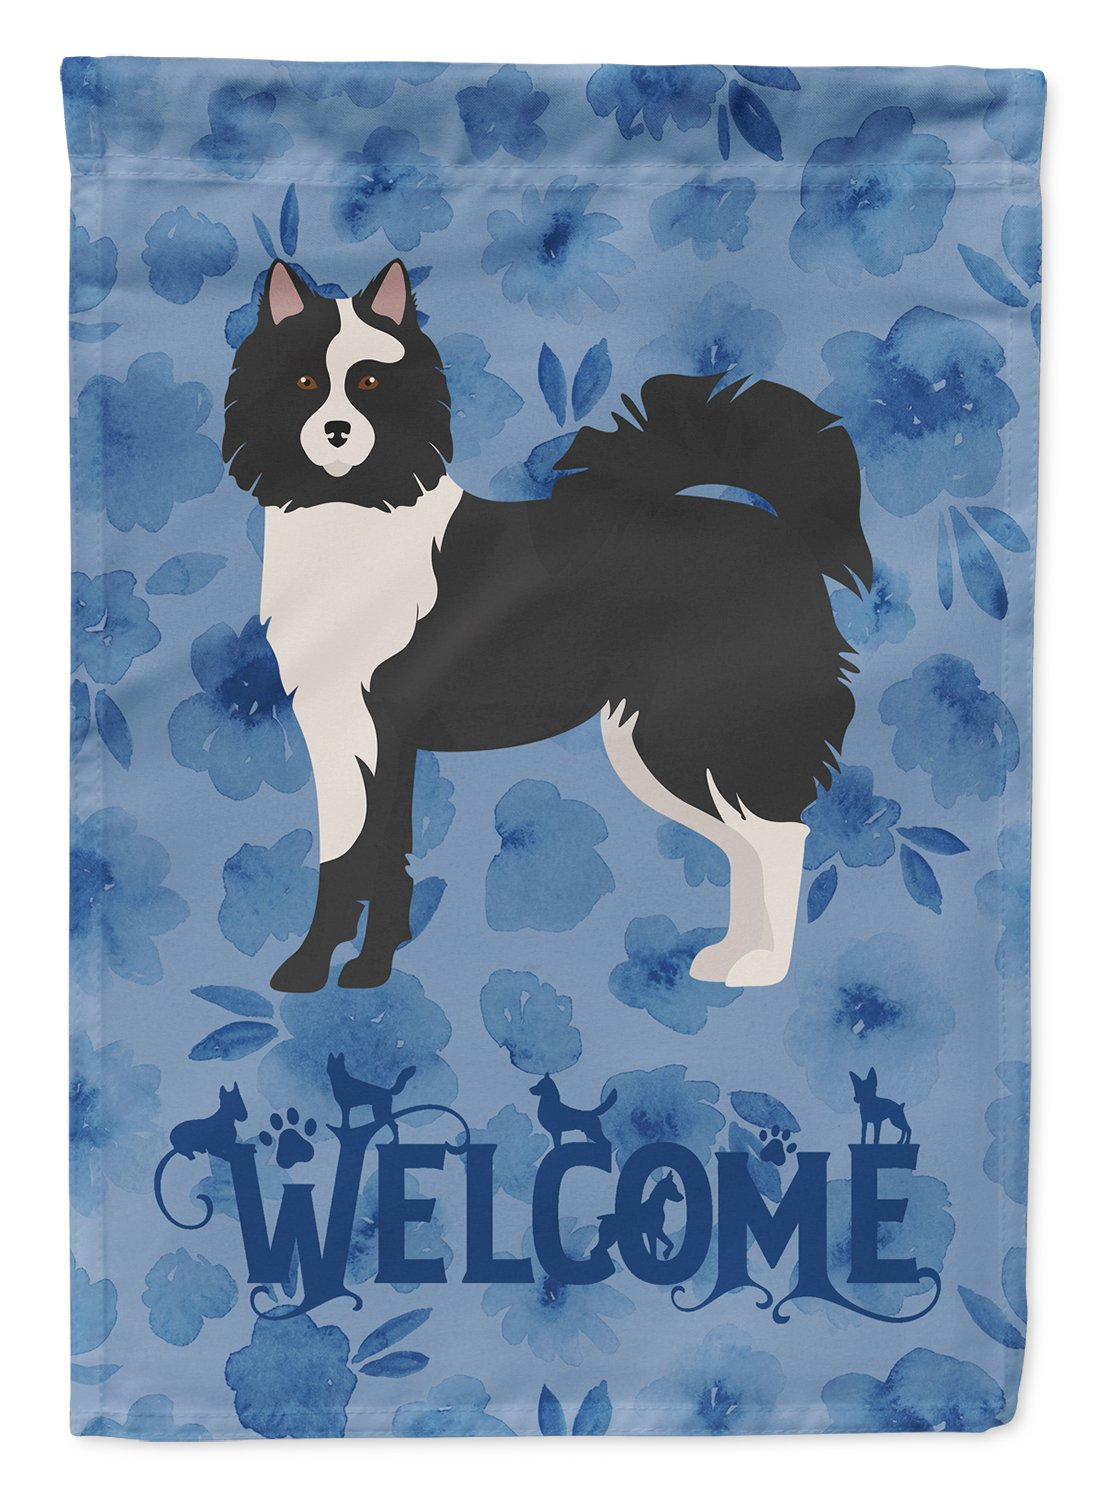 Elo Dog #2 Welcome Flag Garden Size CK5985GF by Caroline's Treasures